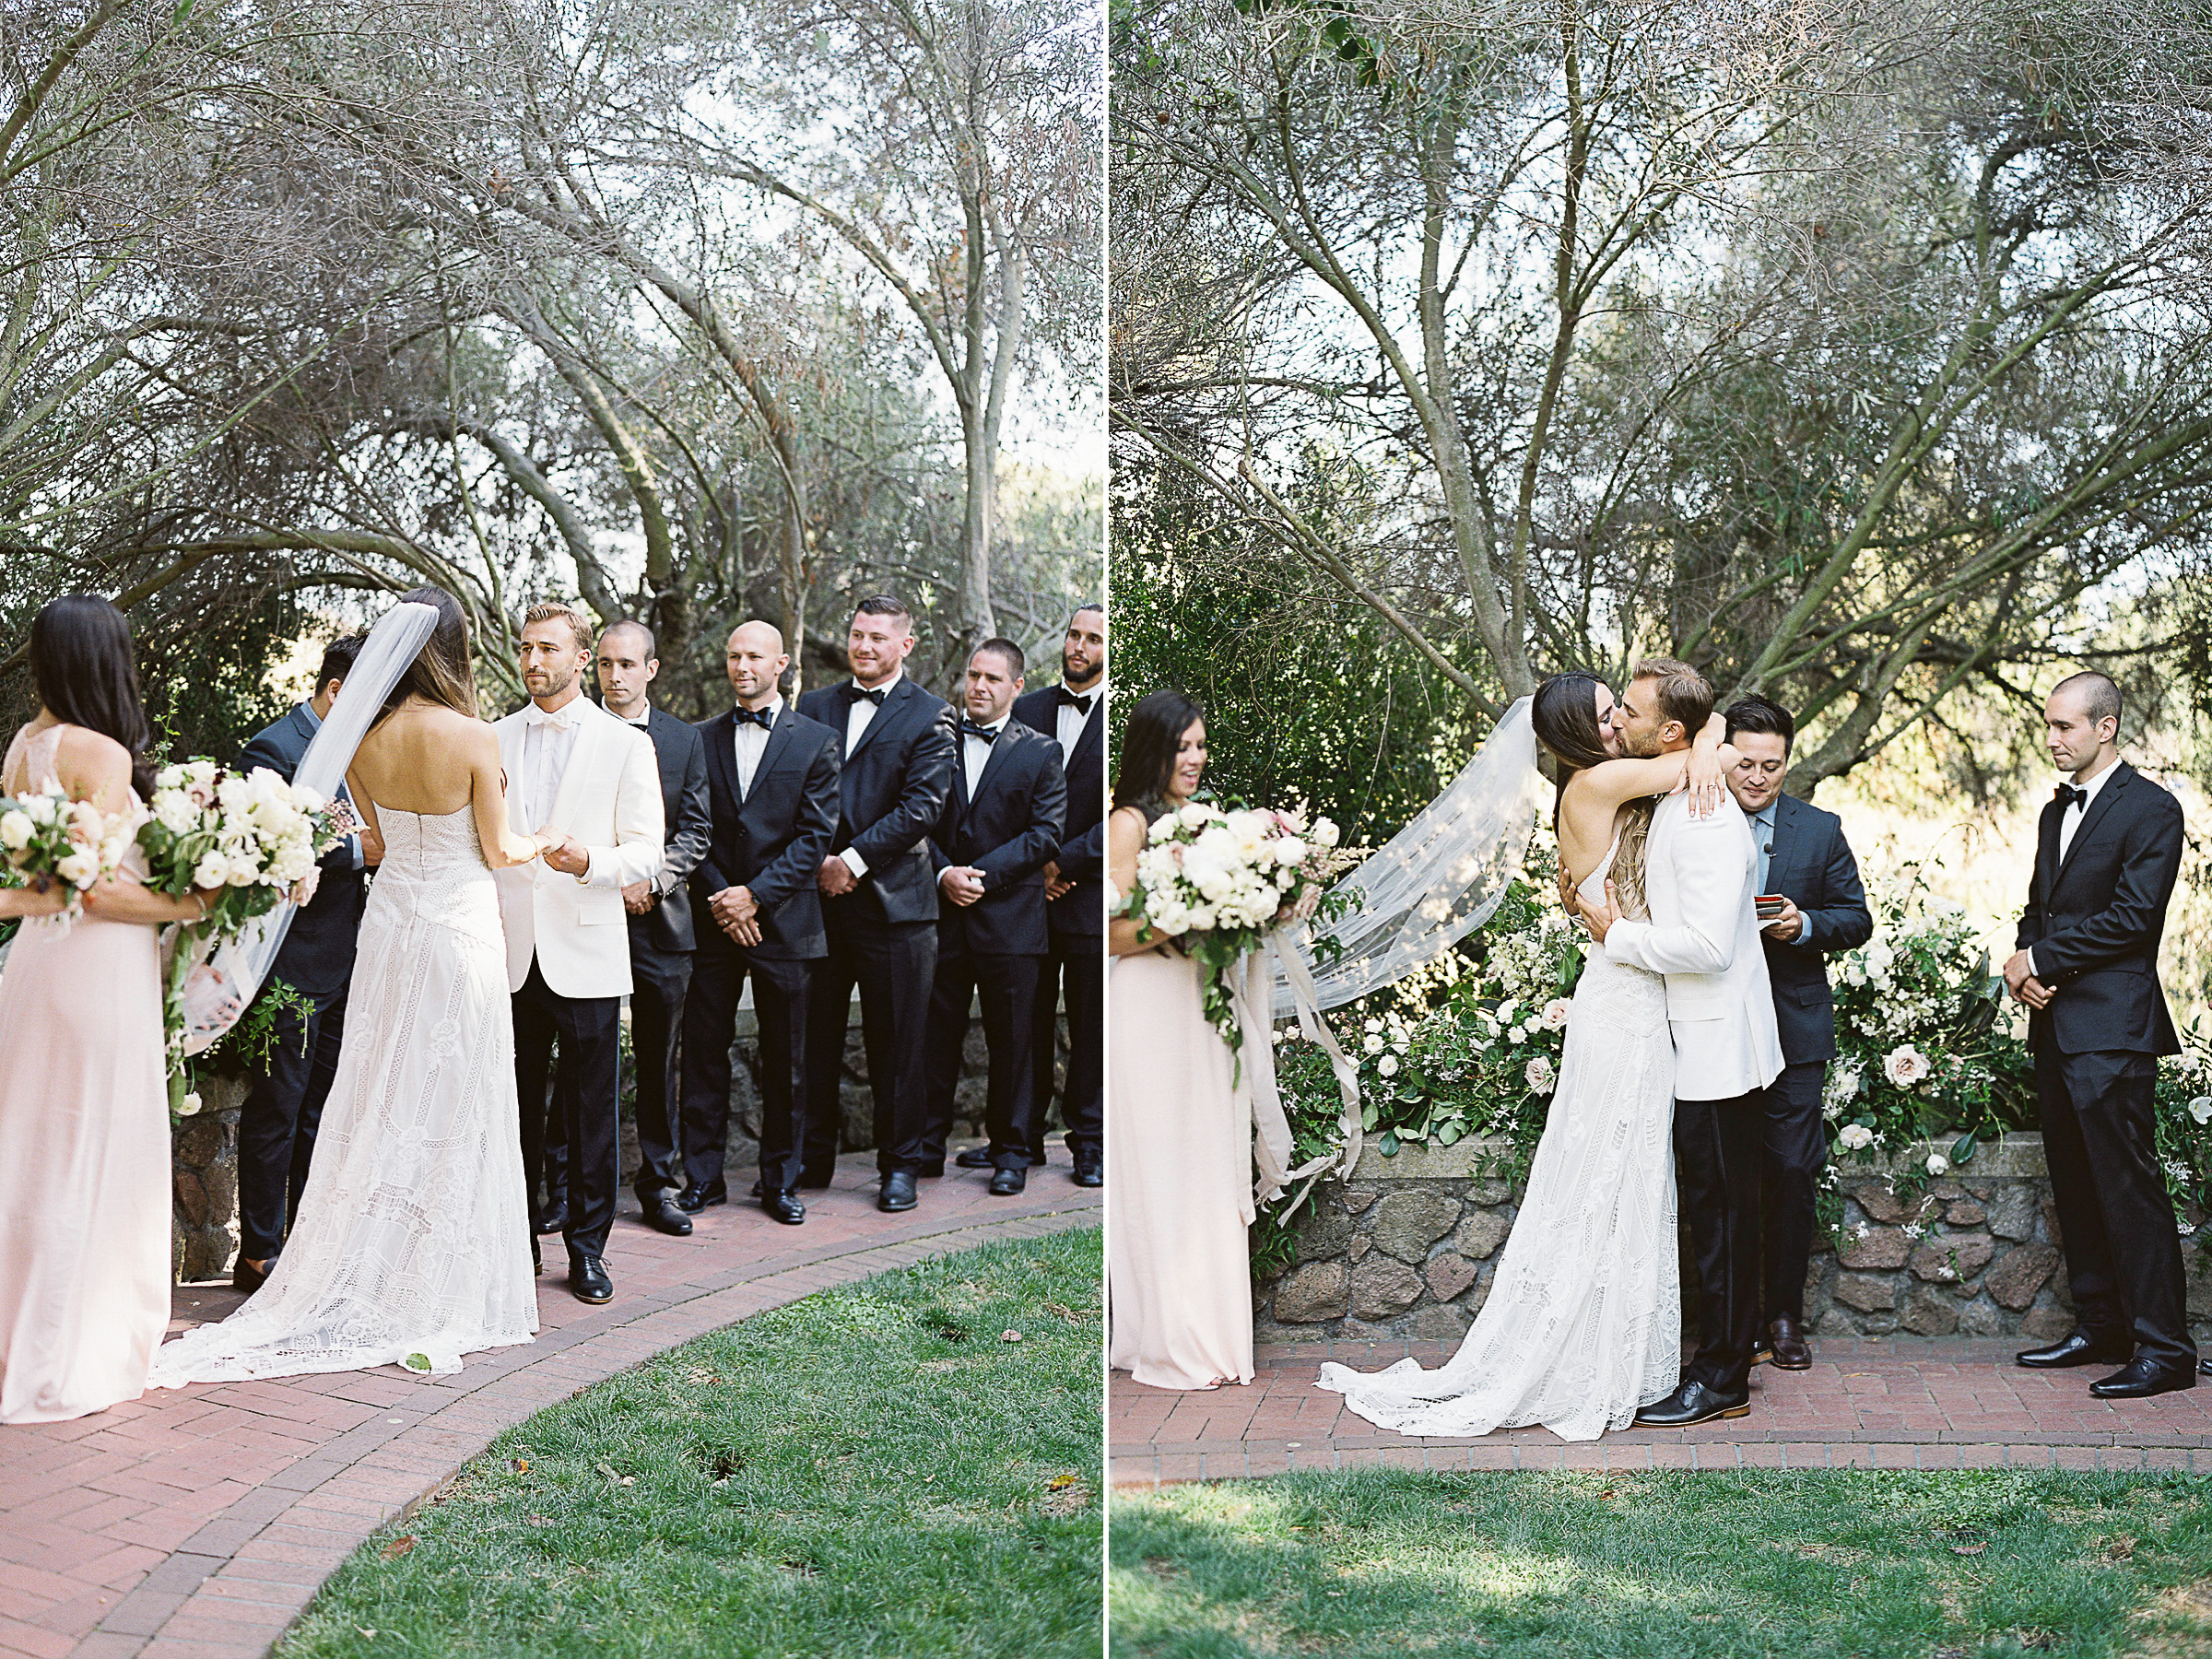 Meghan Mehan Photography - San Francisco Wedding - Film Wedding Photography - 037.jpg